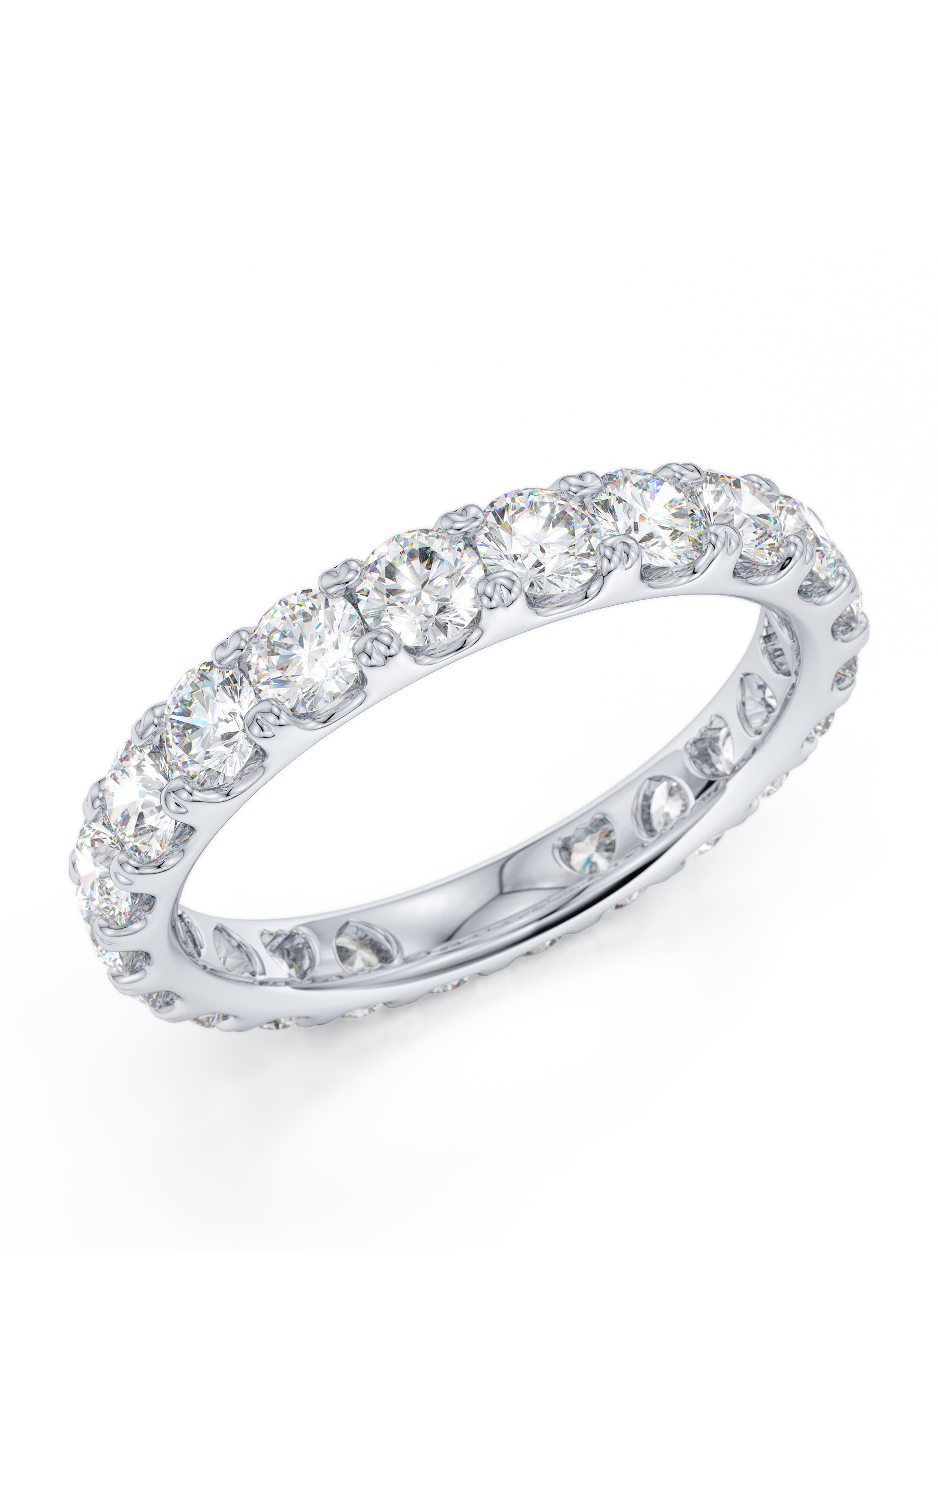 Vibhor Wedding Bands R01063 product image